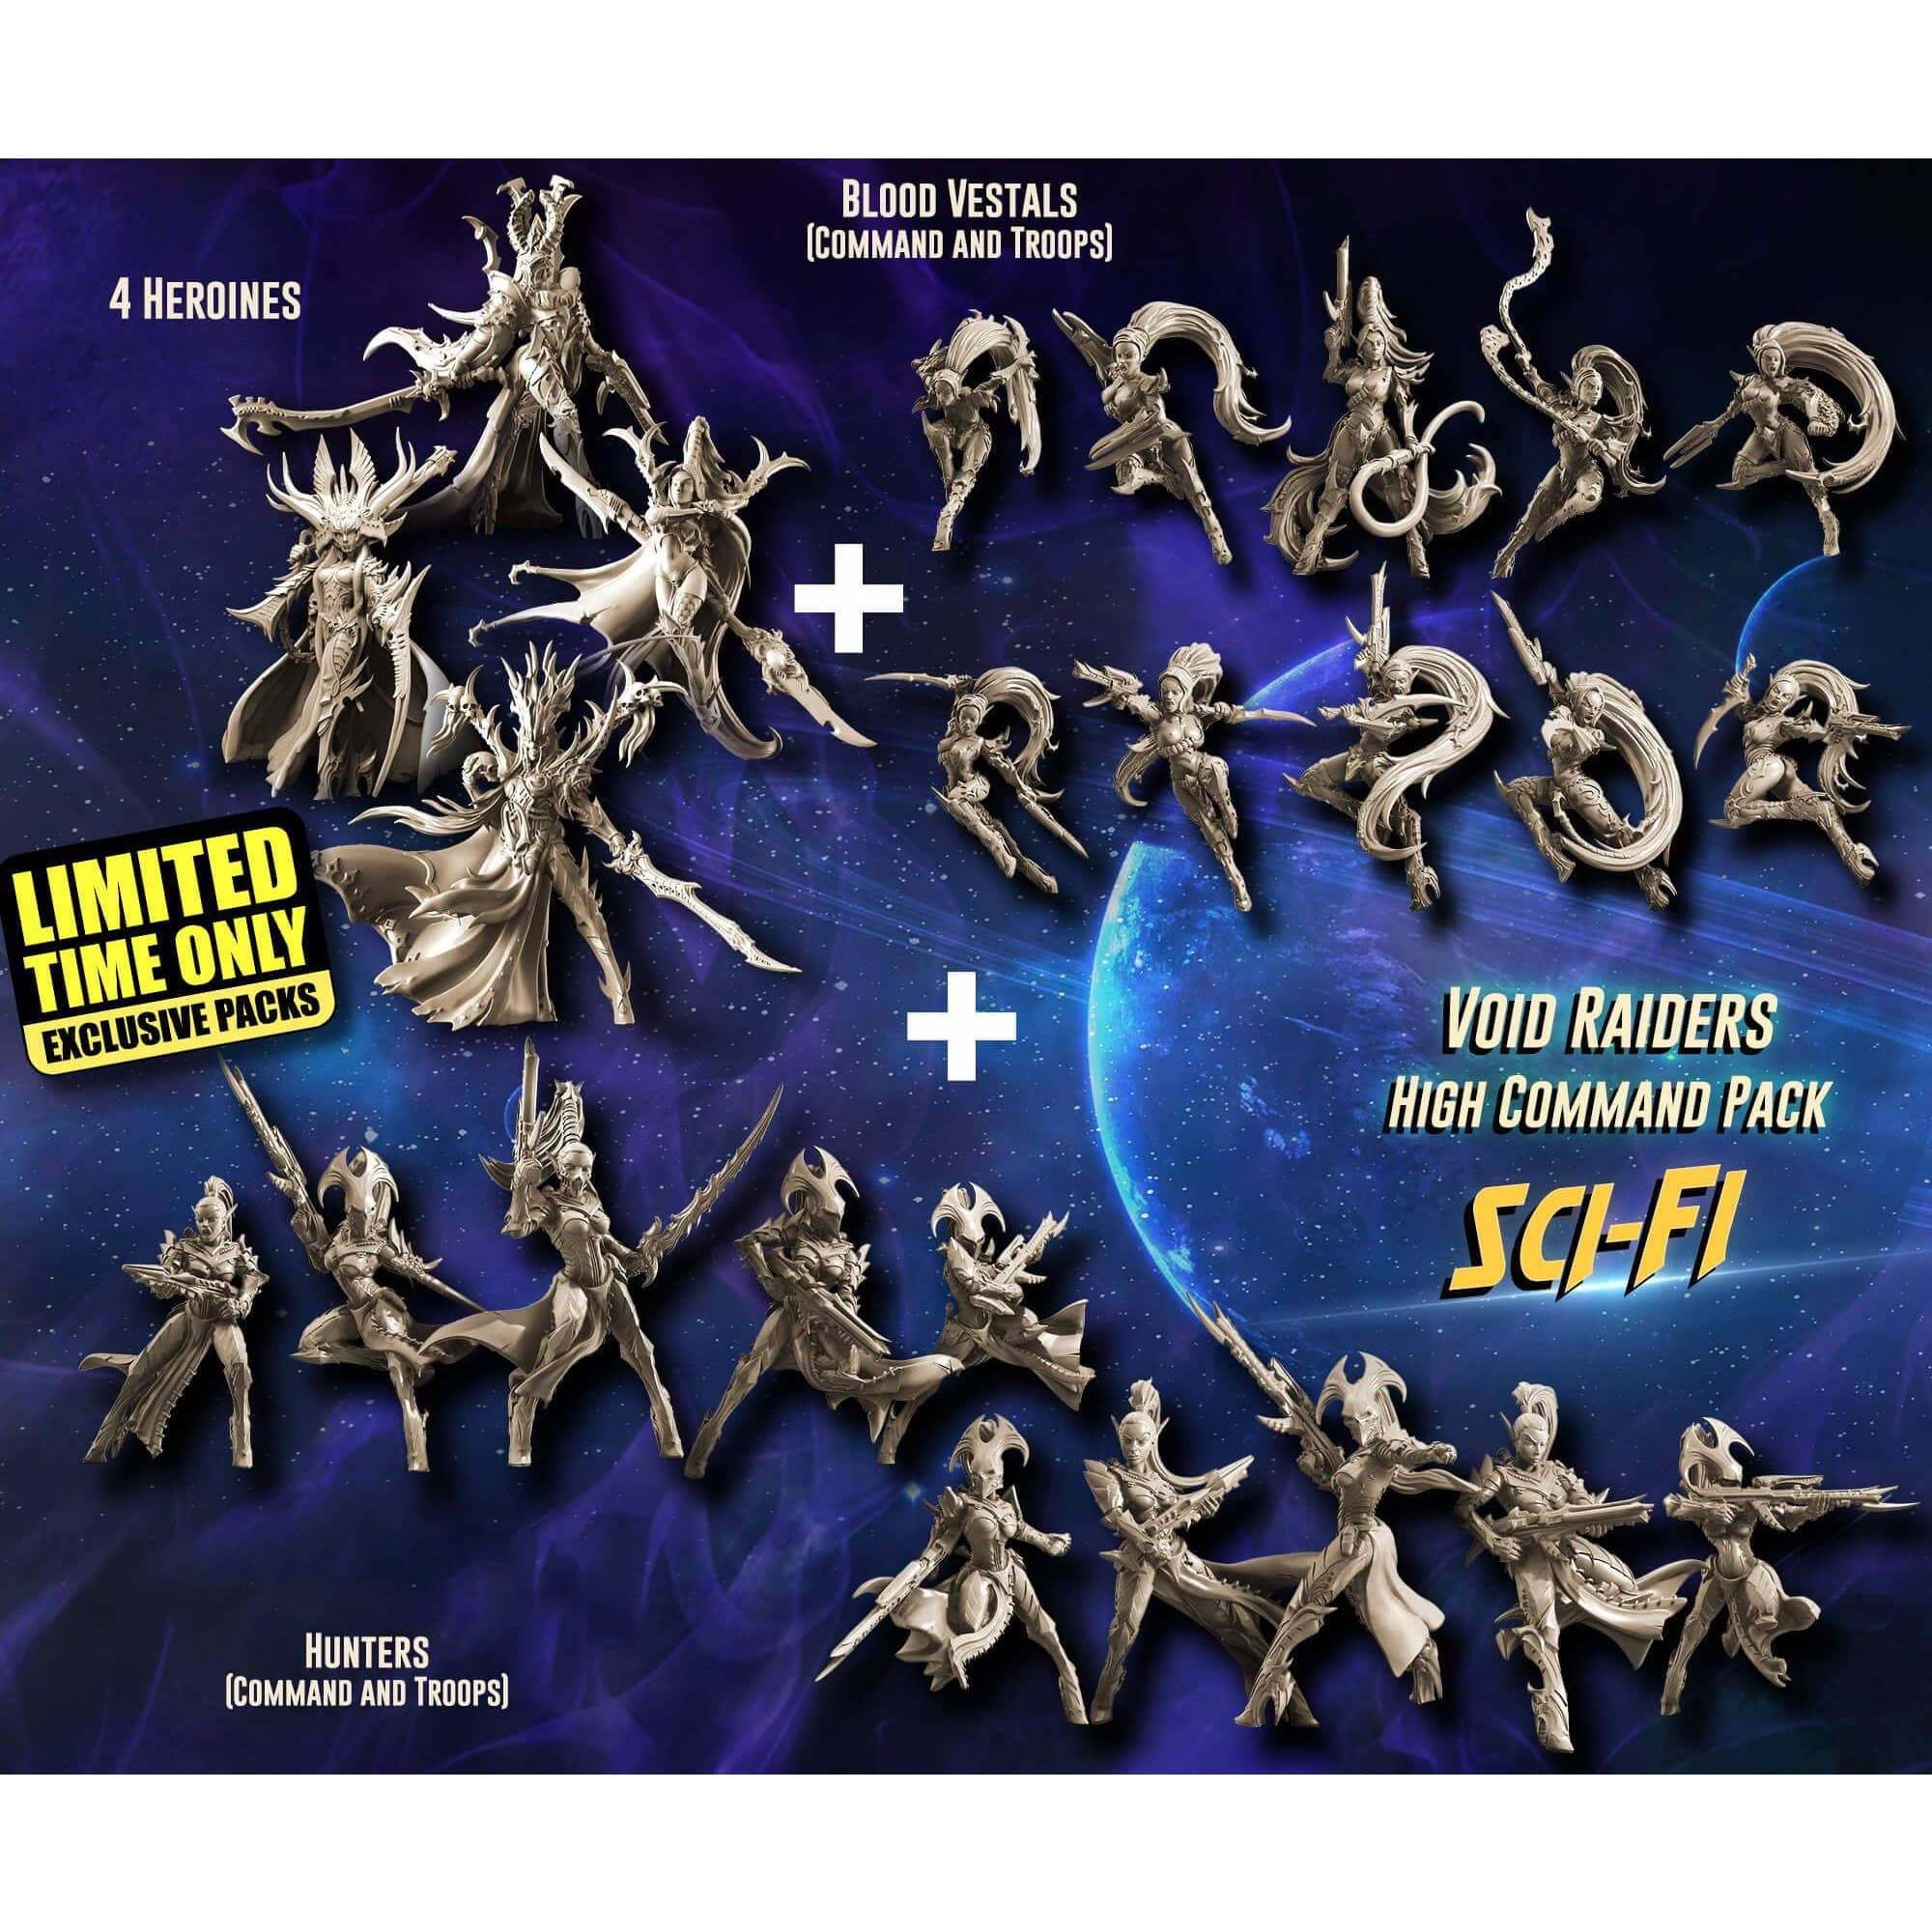 EXCLUSIVE Void Raiders High Command Pack (VE - SF)